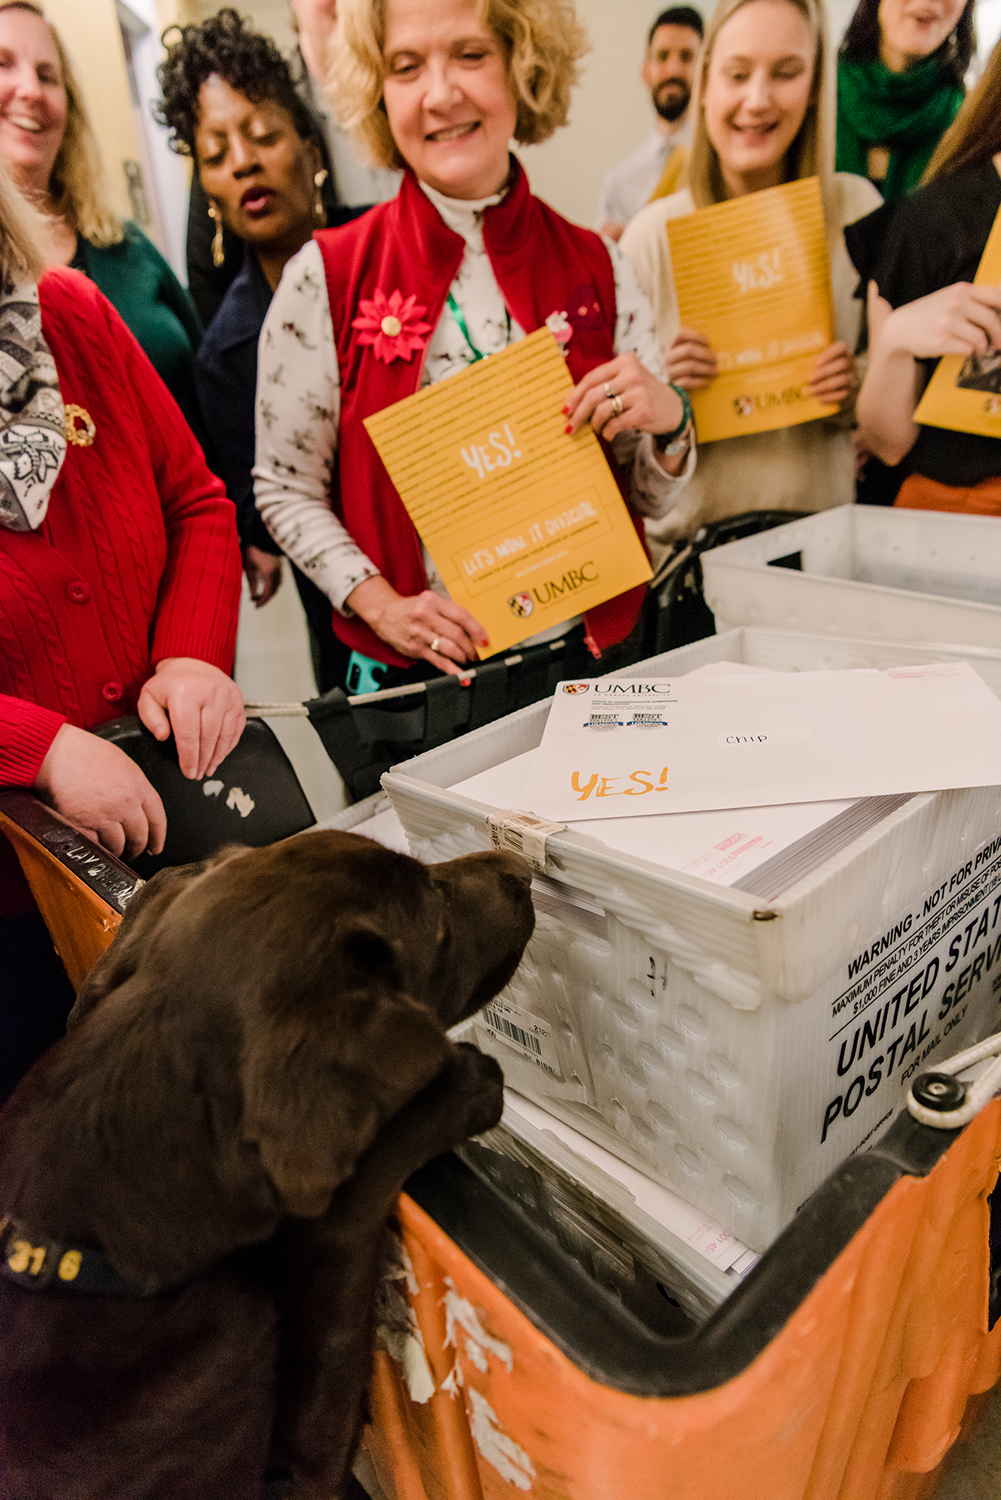 UMBC Police comfort dog stands on find legs to accept a UMBC acceptance letter out of a postal box